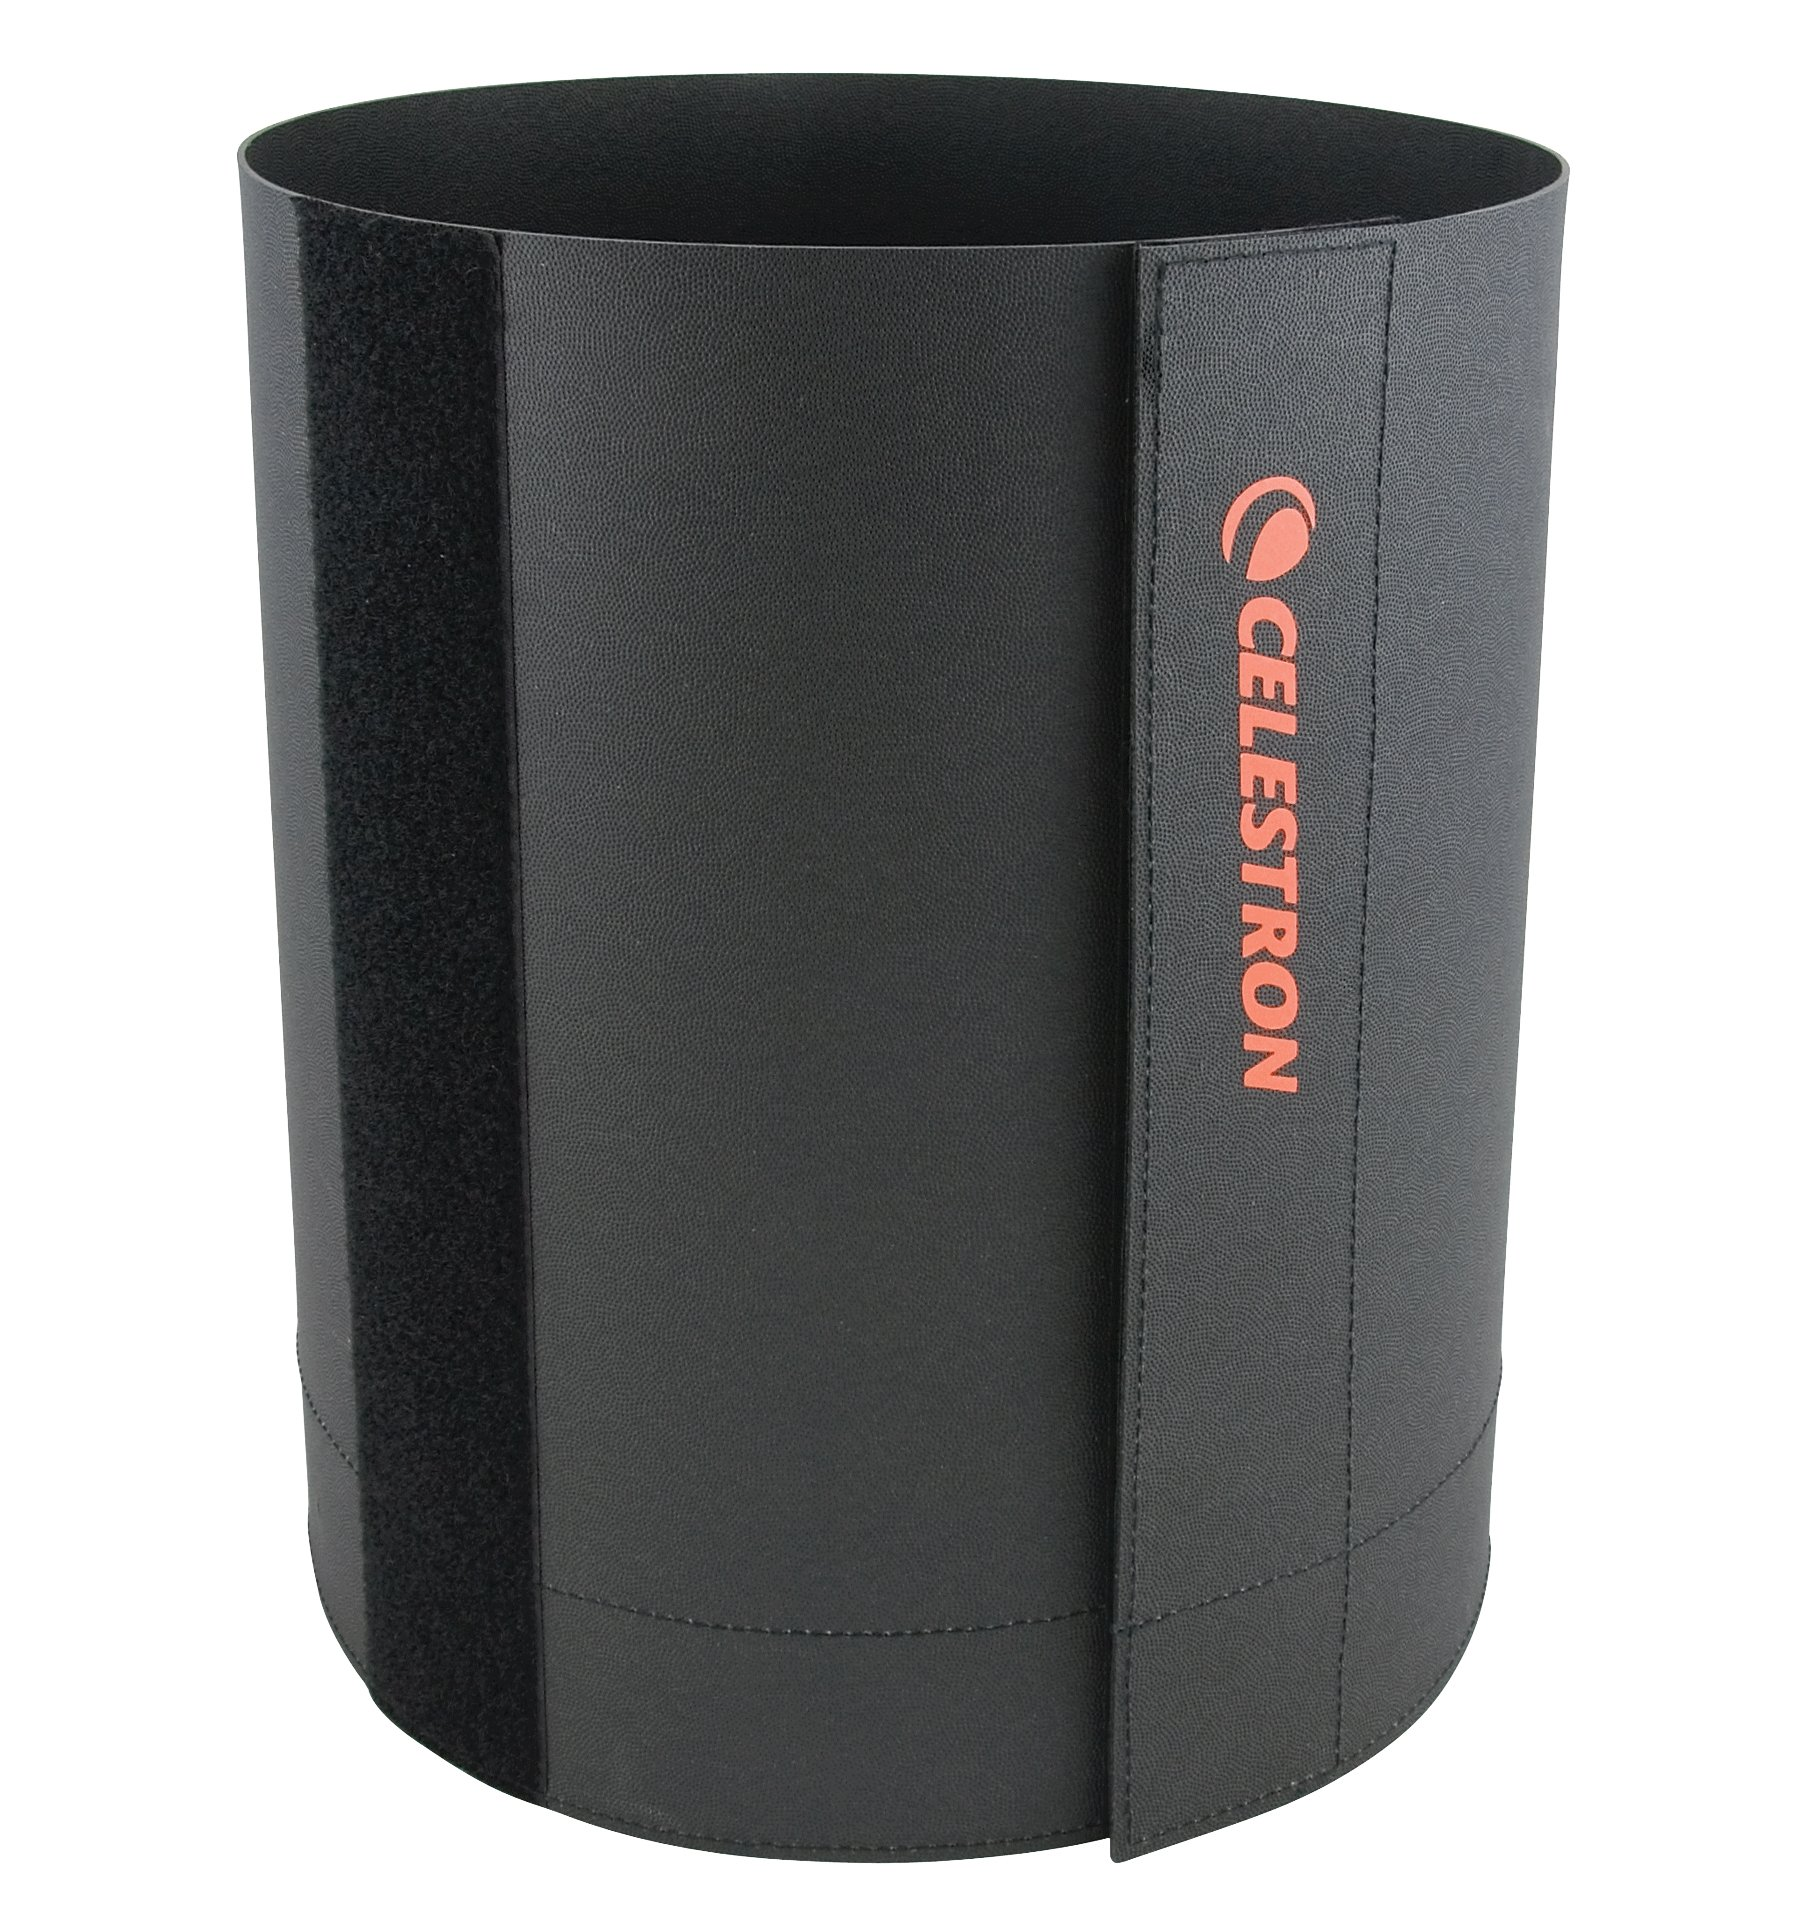 Celestron 94009 Lens Shade for C6 and C8 Tubes (Black) by Celestron